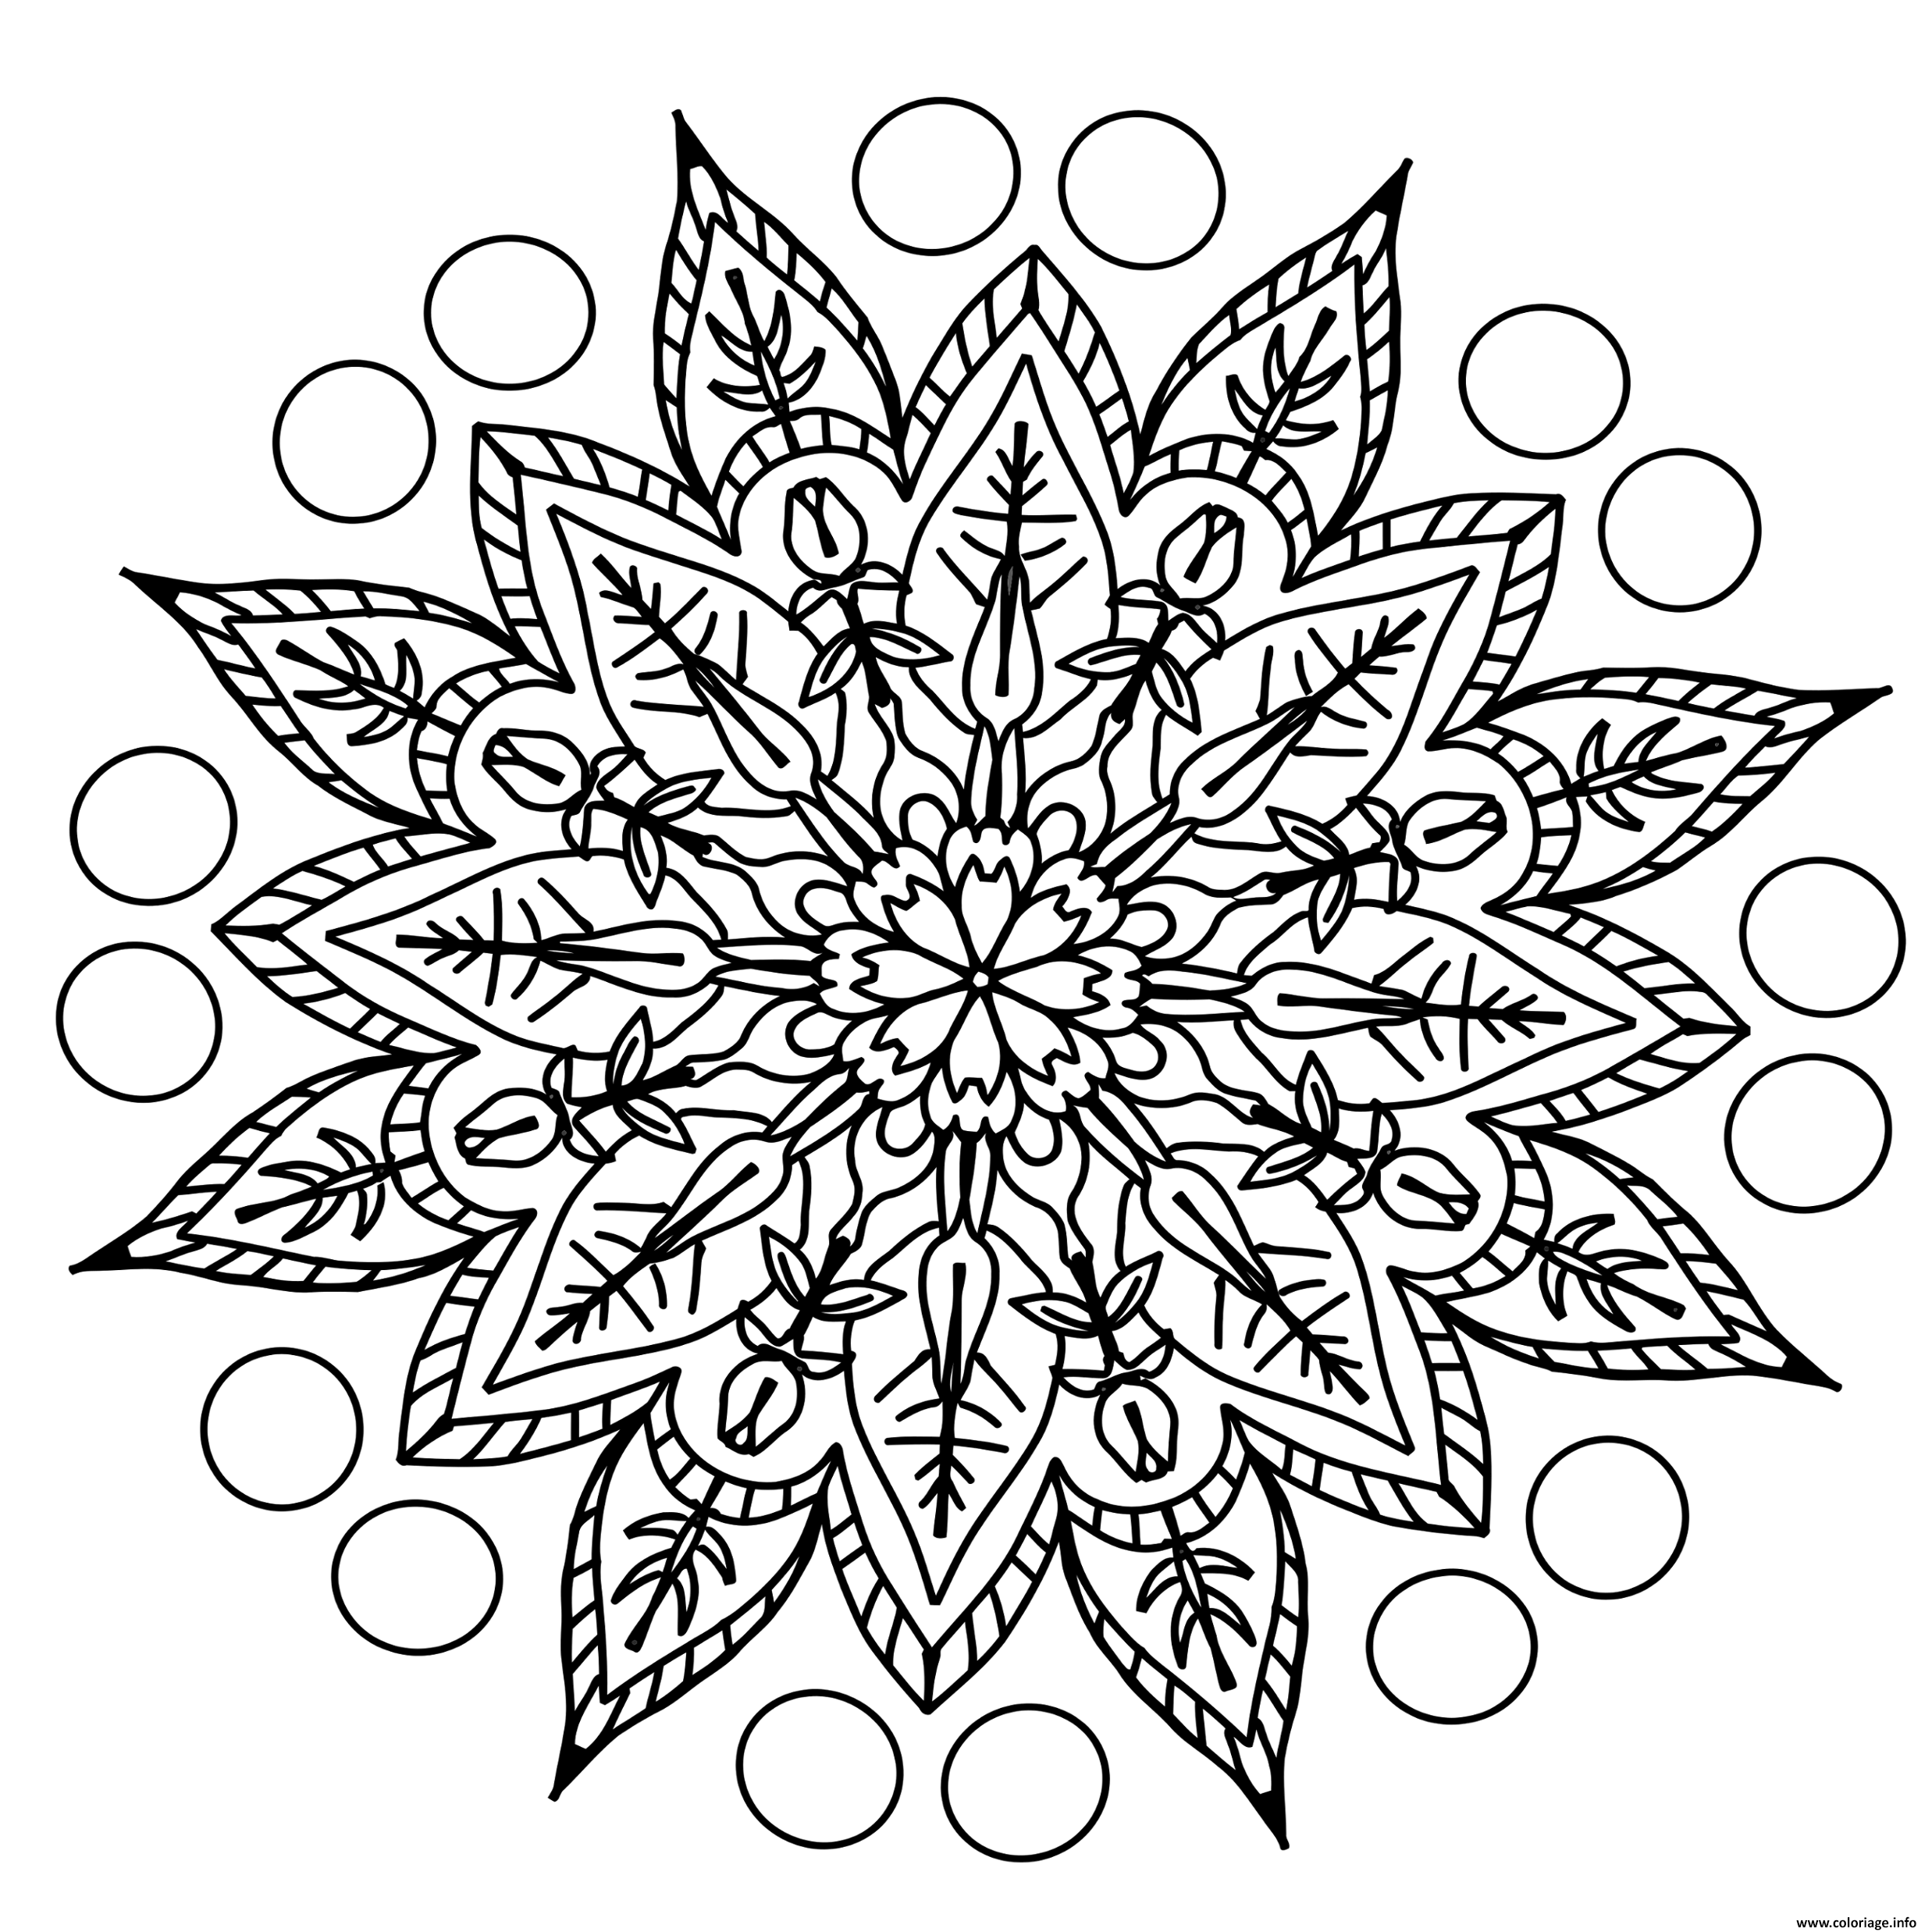 Dessin adulte zentangle Coloriage Gratuit à Imprimer